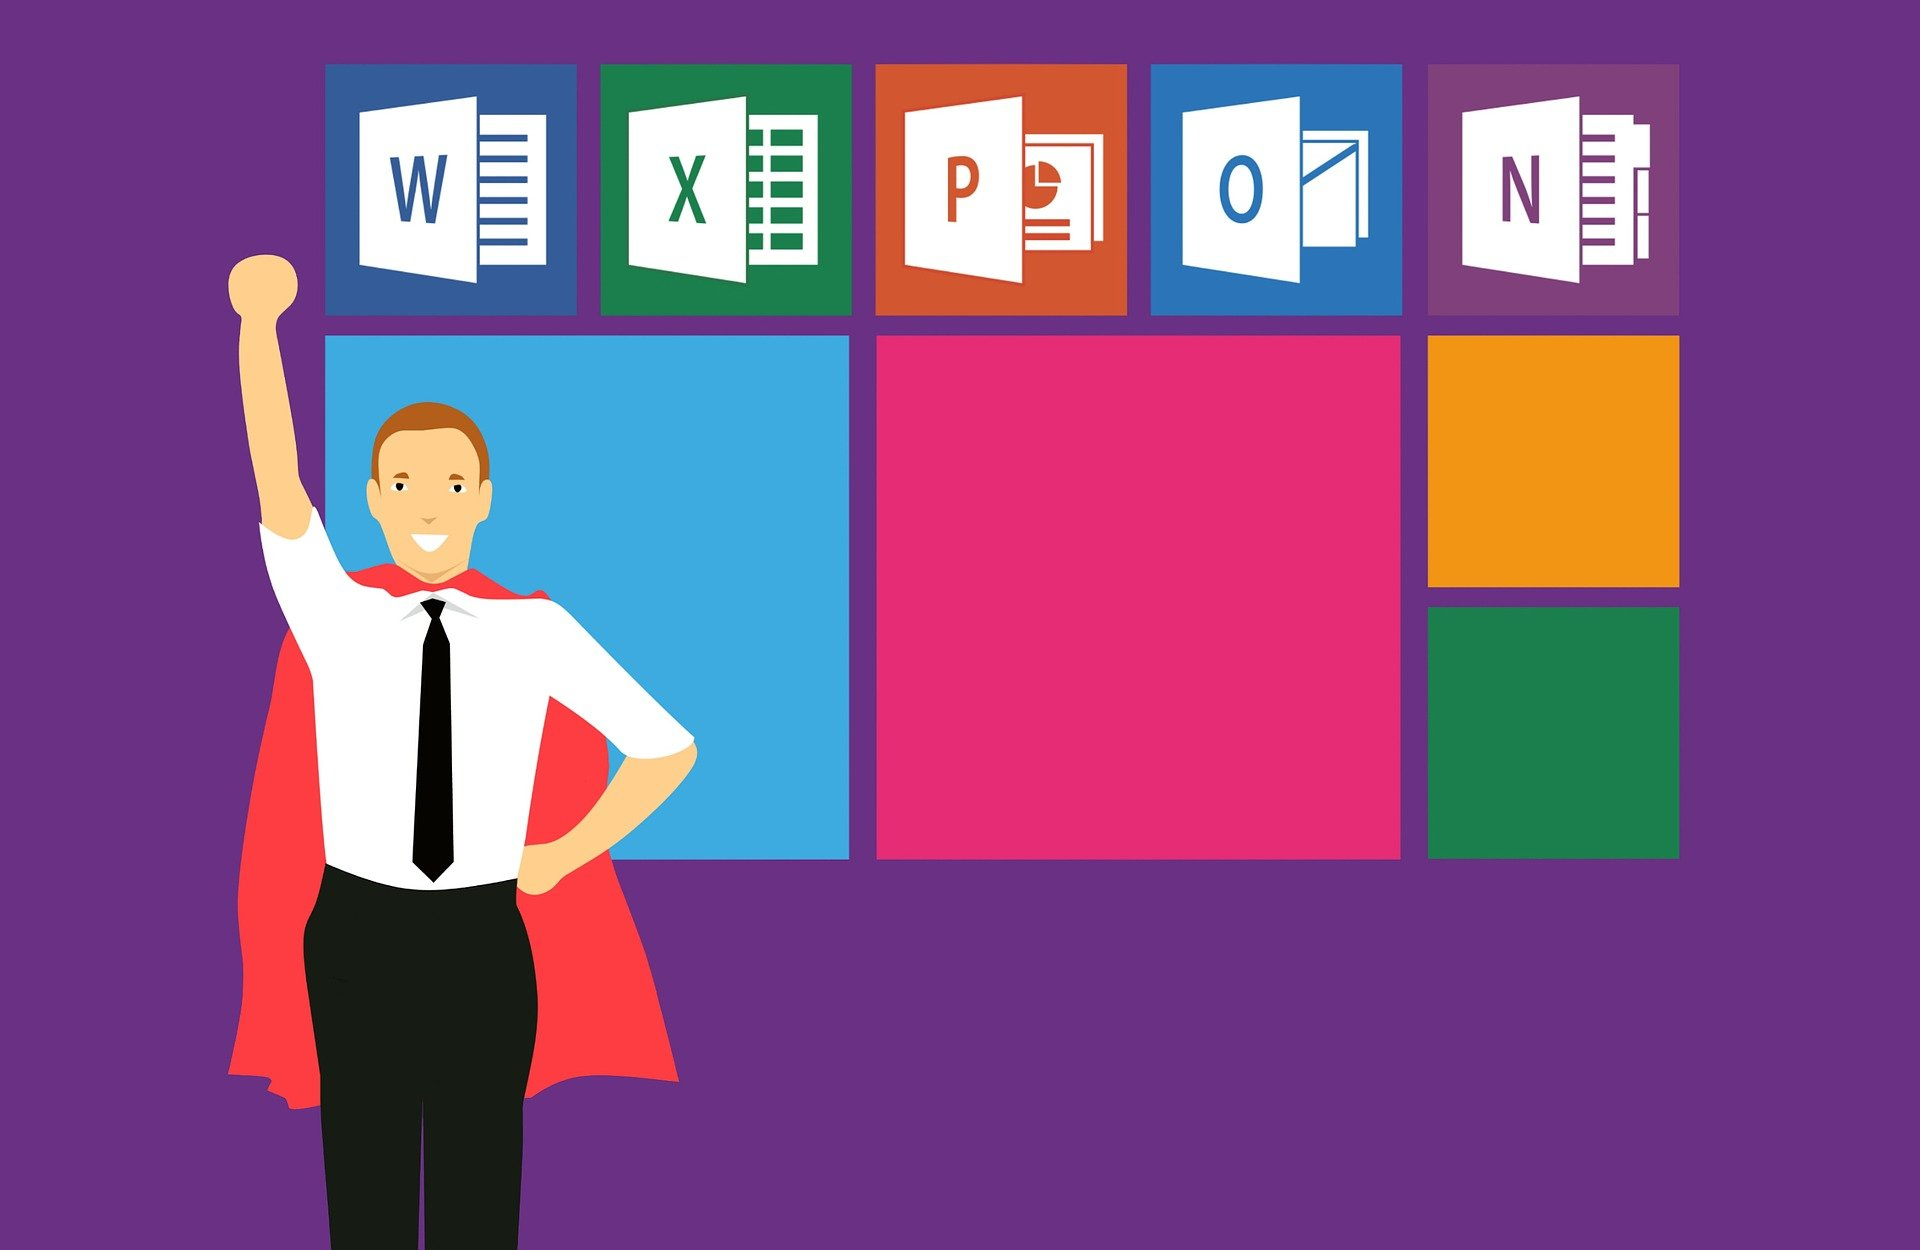 A man with a cape in front of microsoft office symbols.